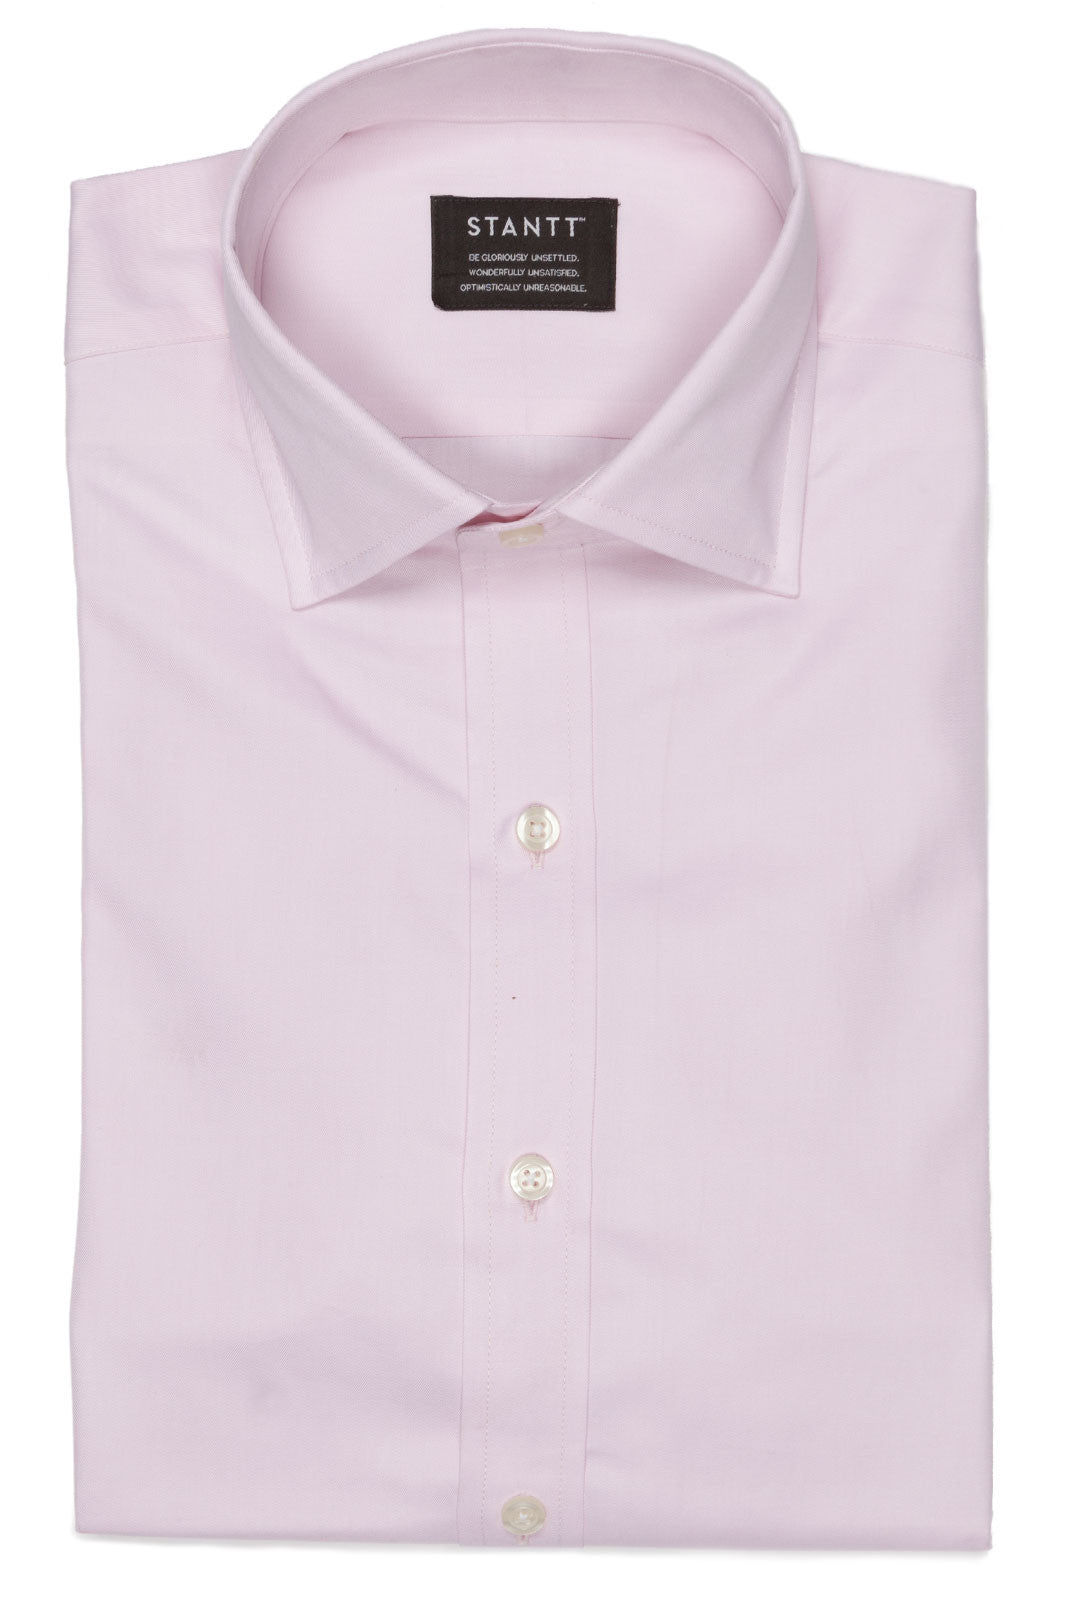 Light Pink: Semi-Spread Collar, Barrel Cuff